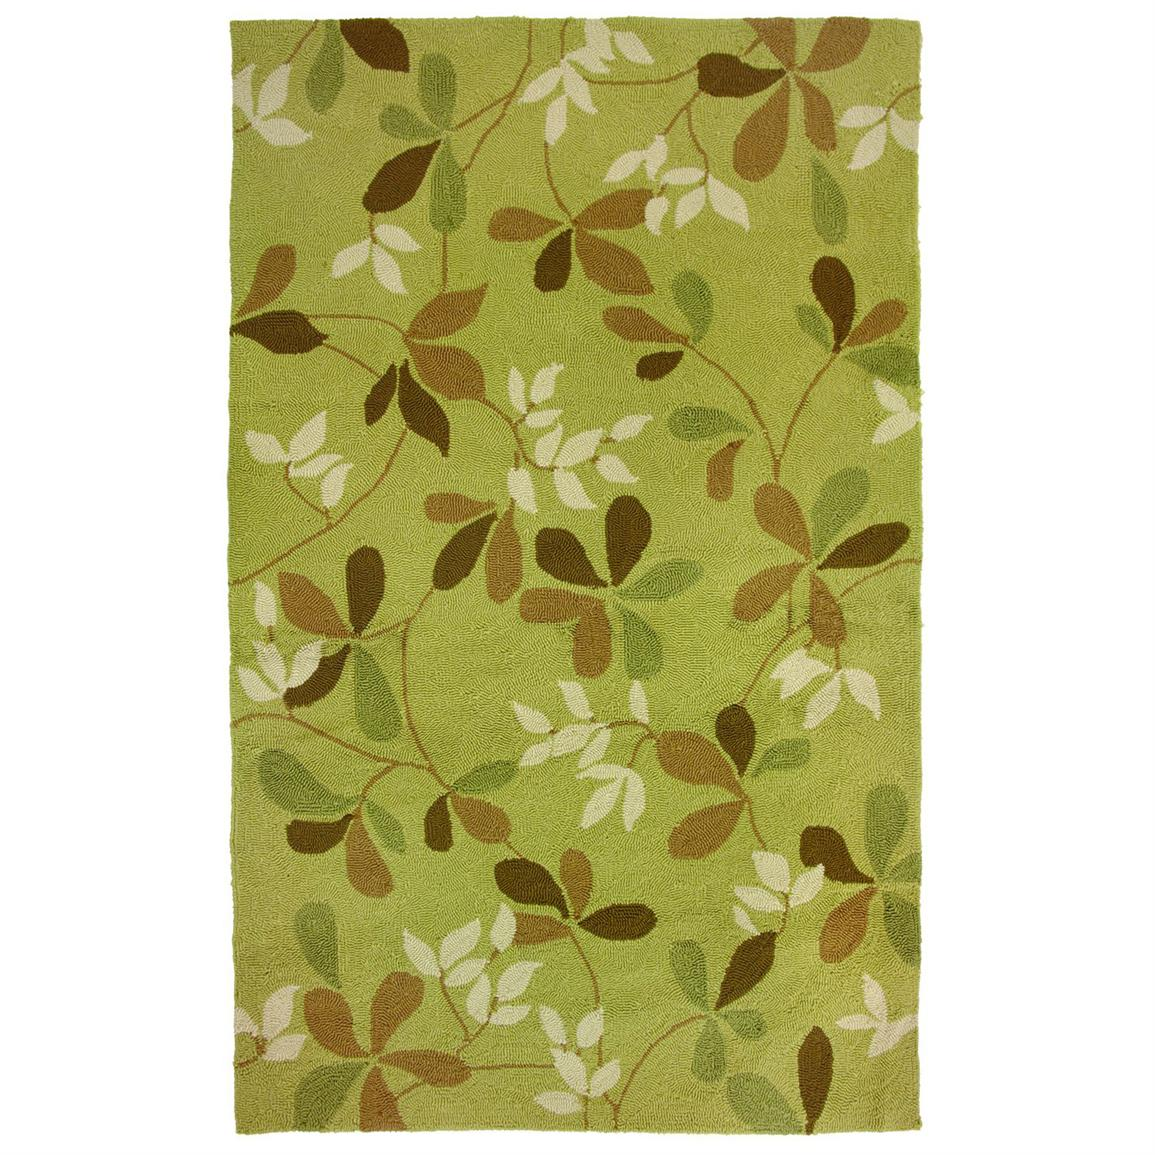 Homefires™ Ashbury Park 5x7 foot Outdoor Rug